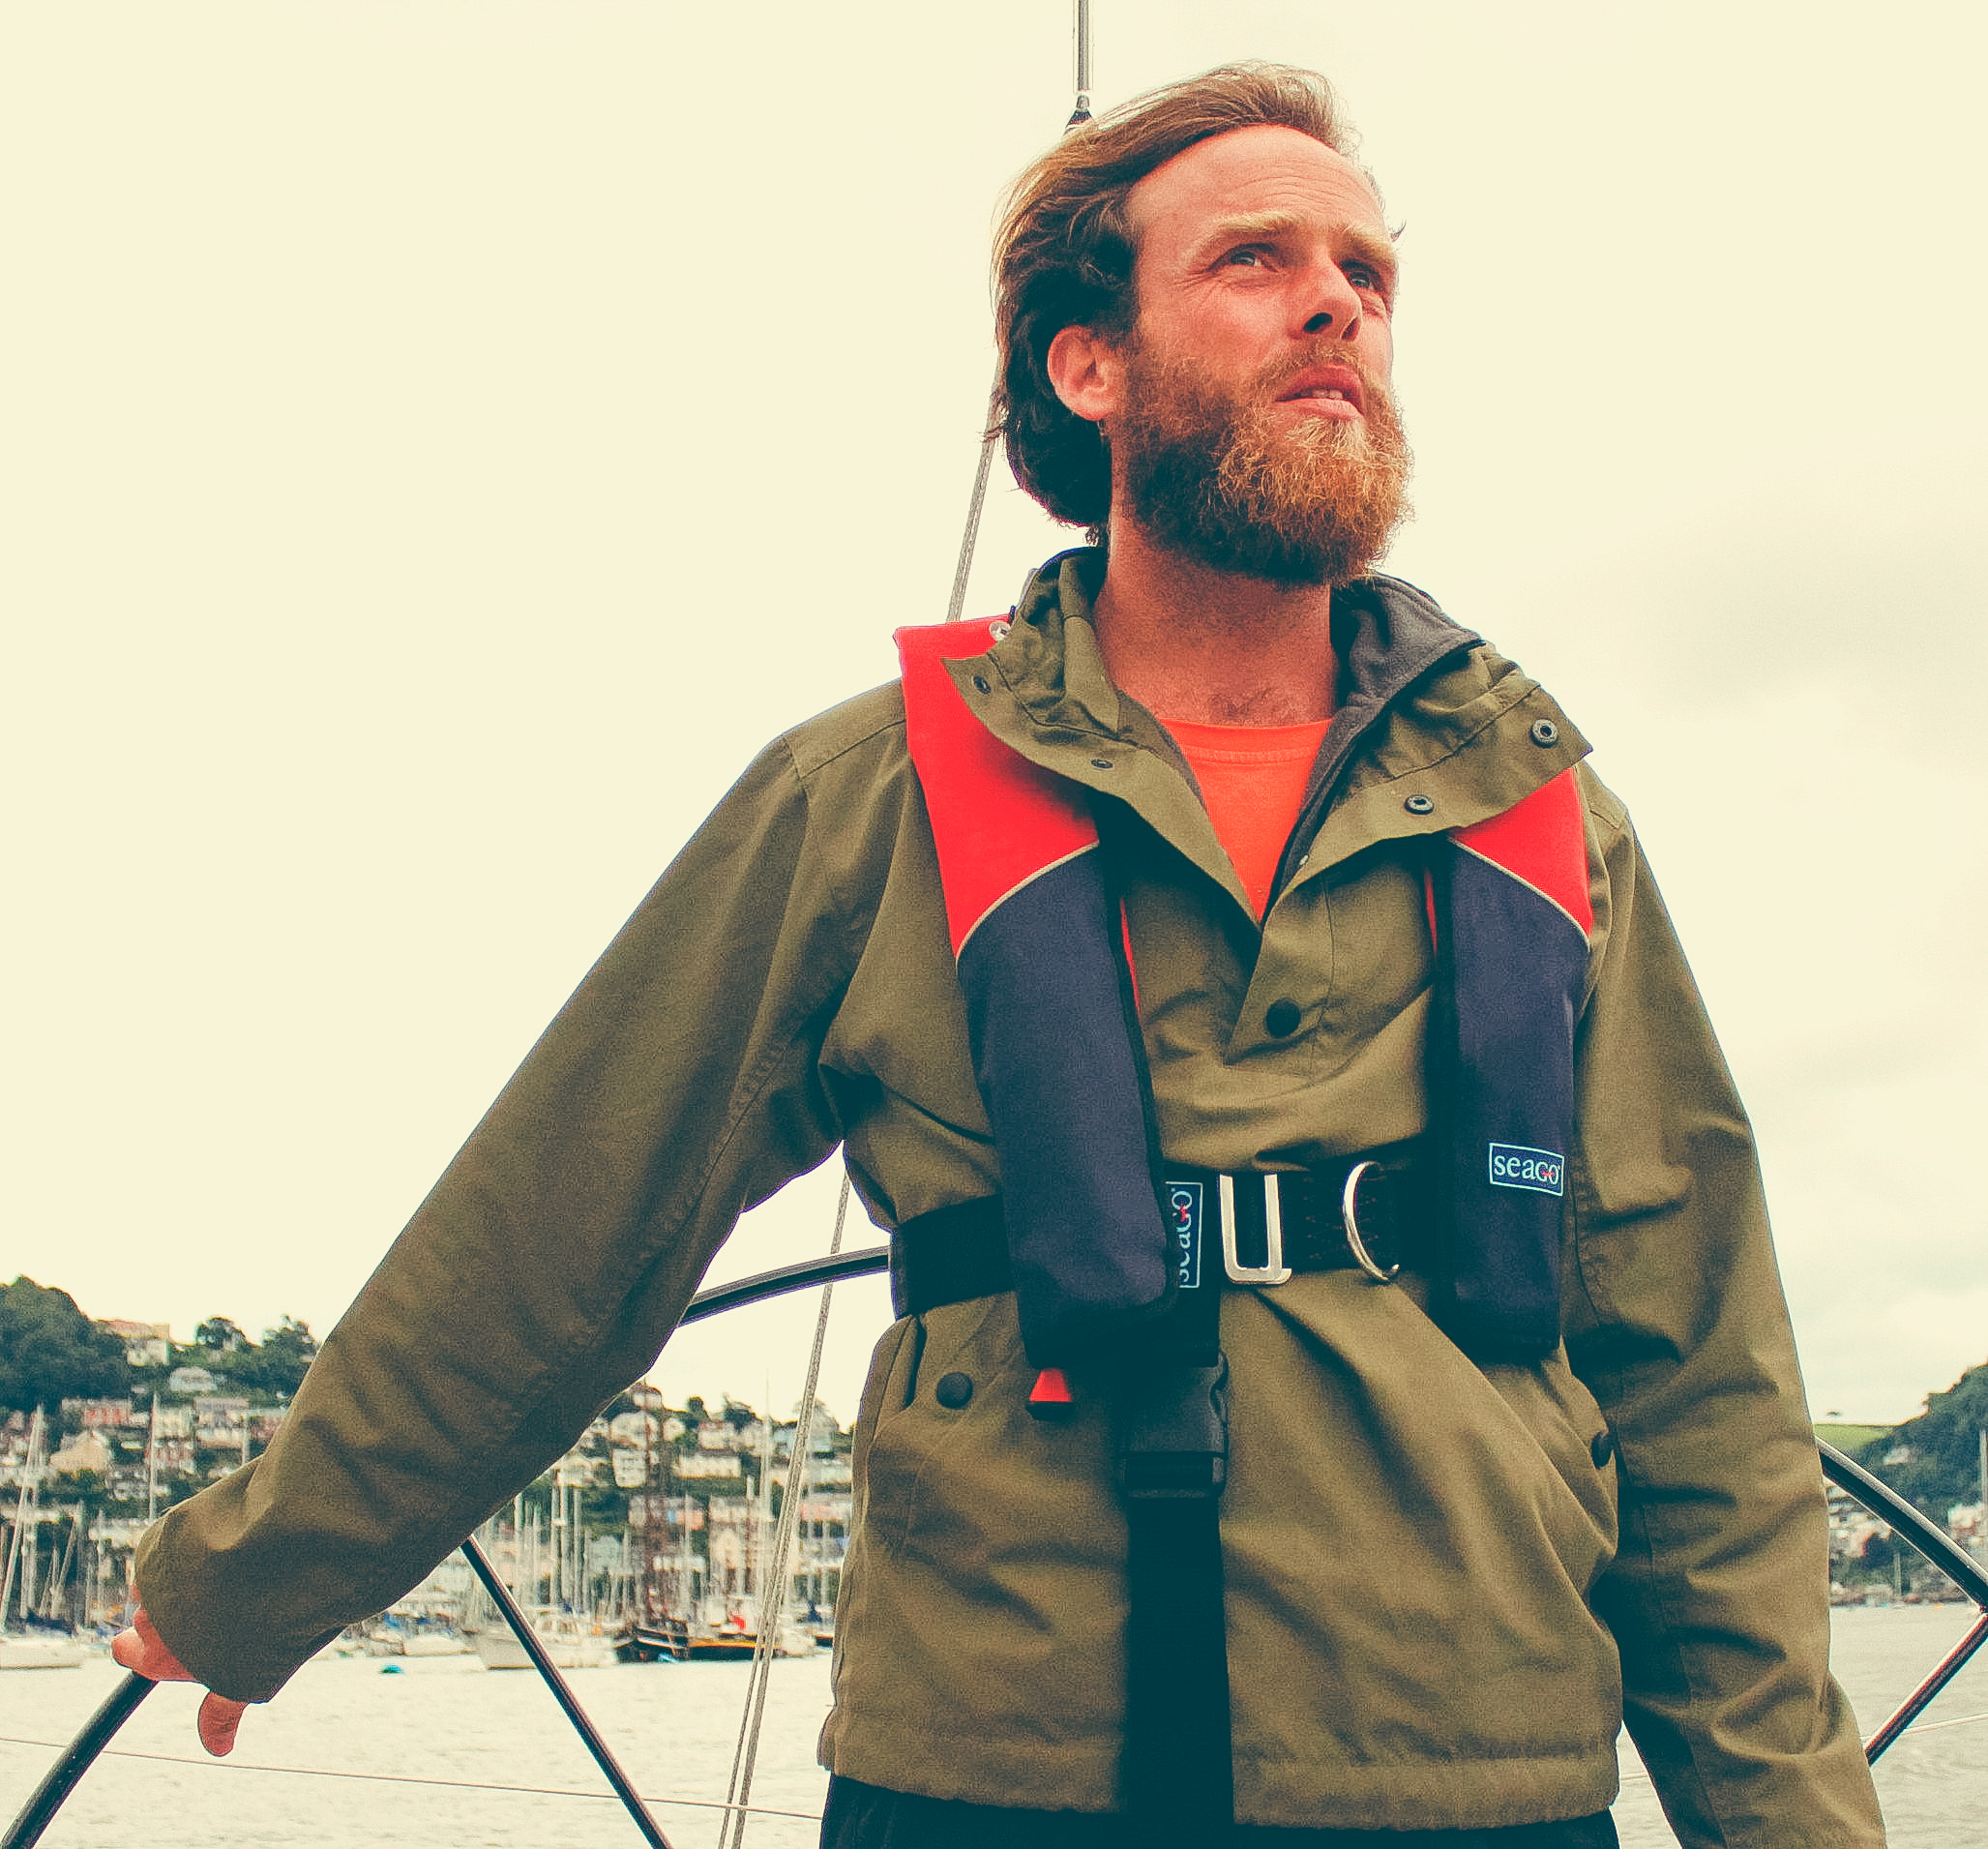 Ross Porter - Ross has worked as a captain, a marine and mechanical engineer, site manager for Buddhafield Festival and is now the director of VoyageVert - a project that is dedicated to providing sustainable travel.